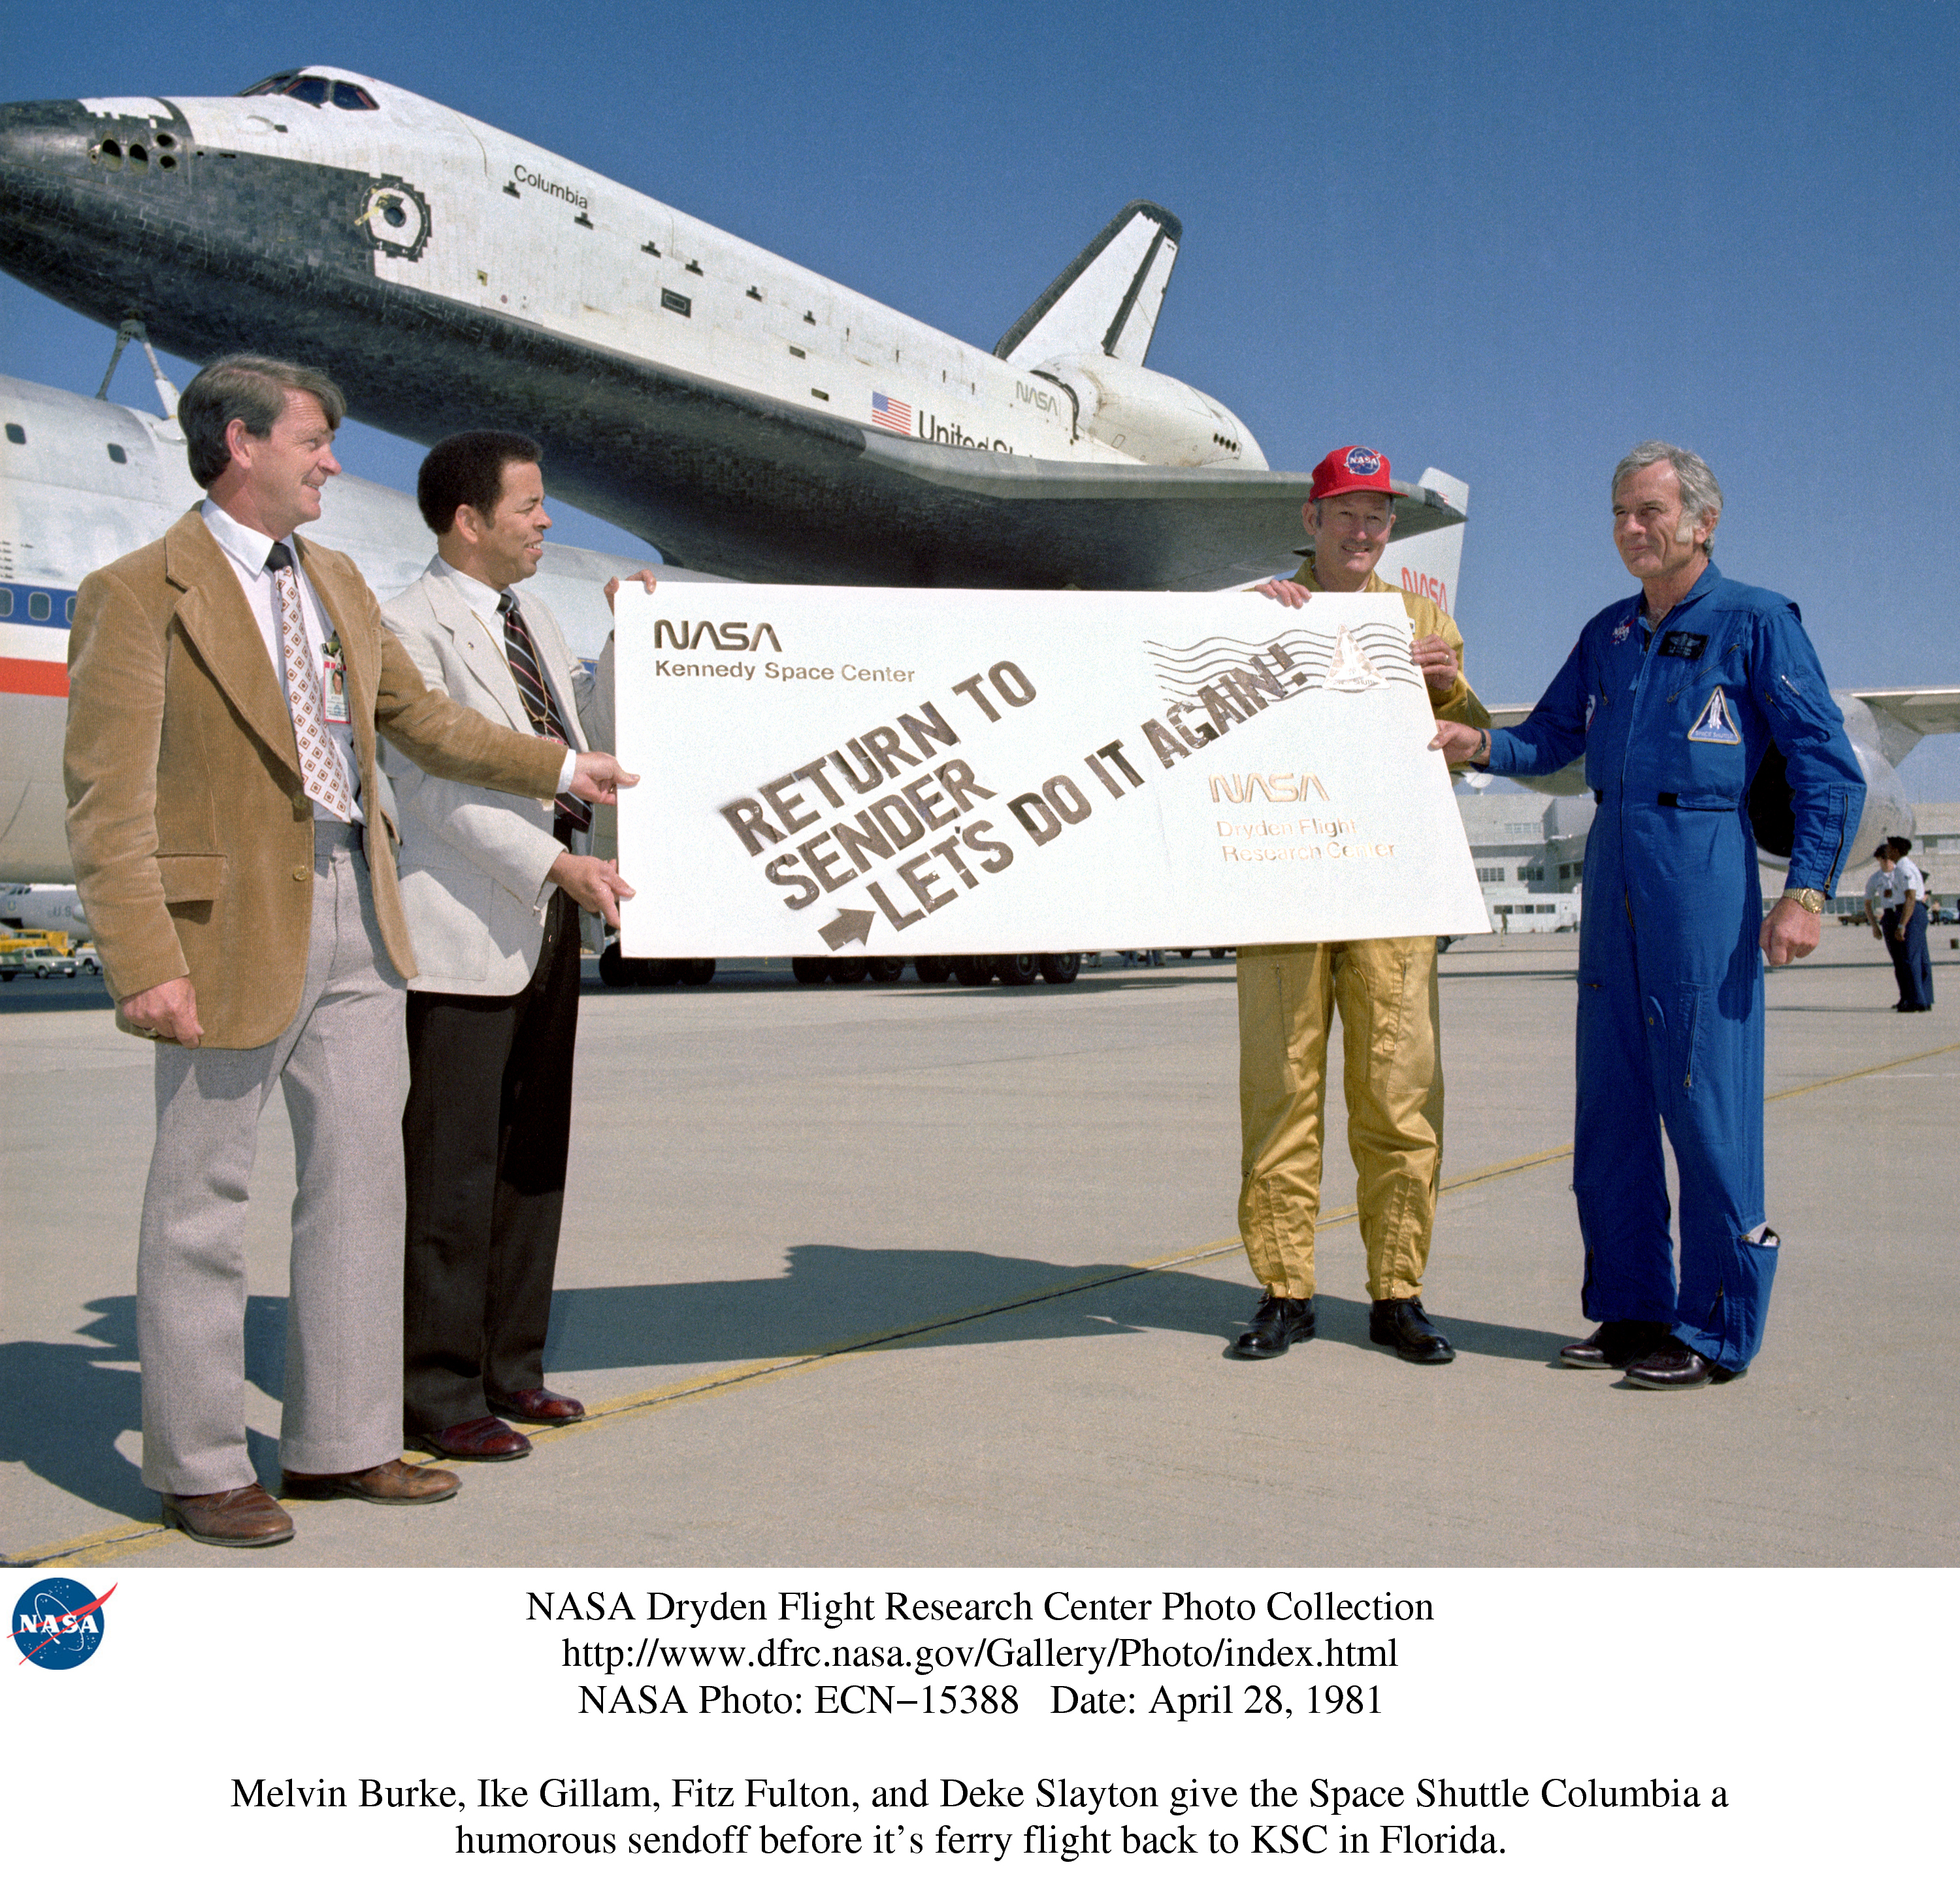 space shuttle columbia mass - photo #26